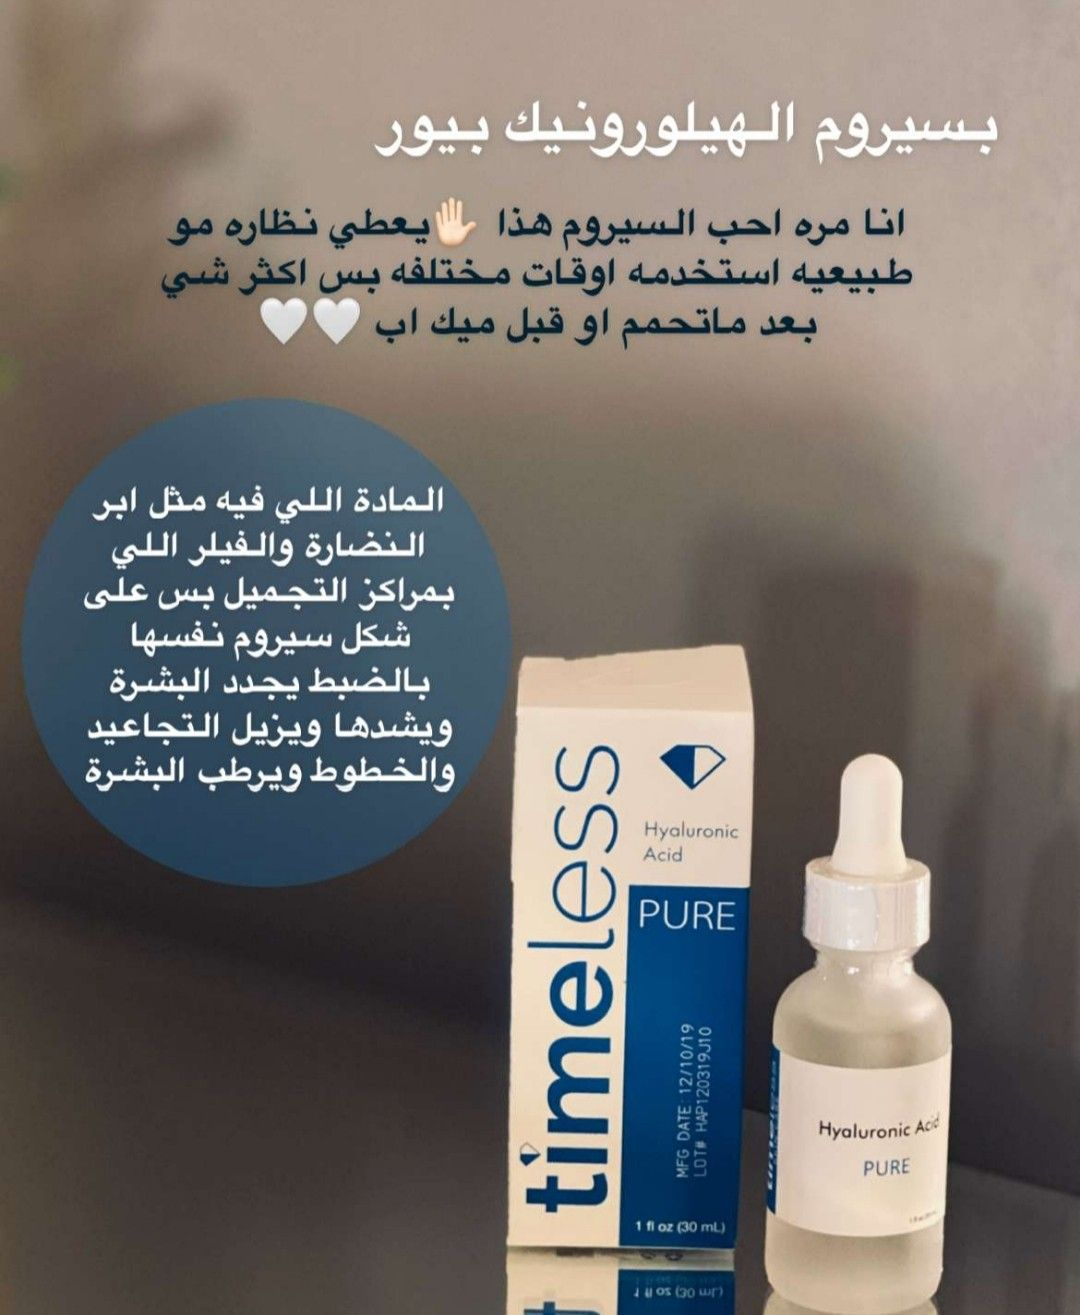 Pin By Asma Alotaibi On عناية Hand Soap Bottle Pure Products Soap Bottle